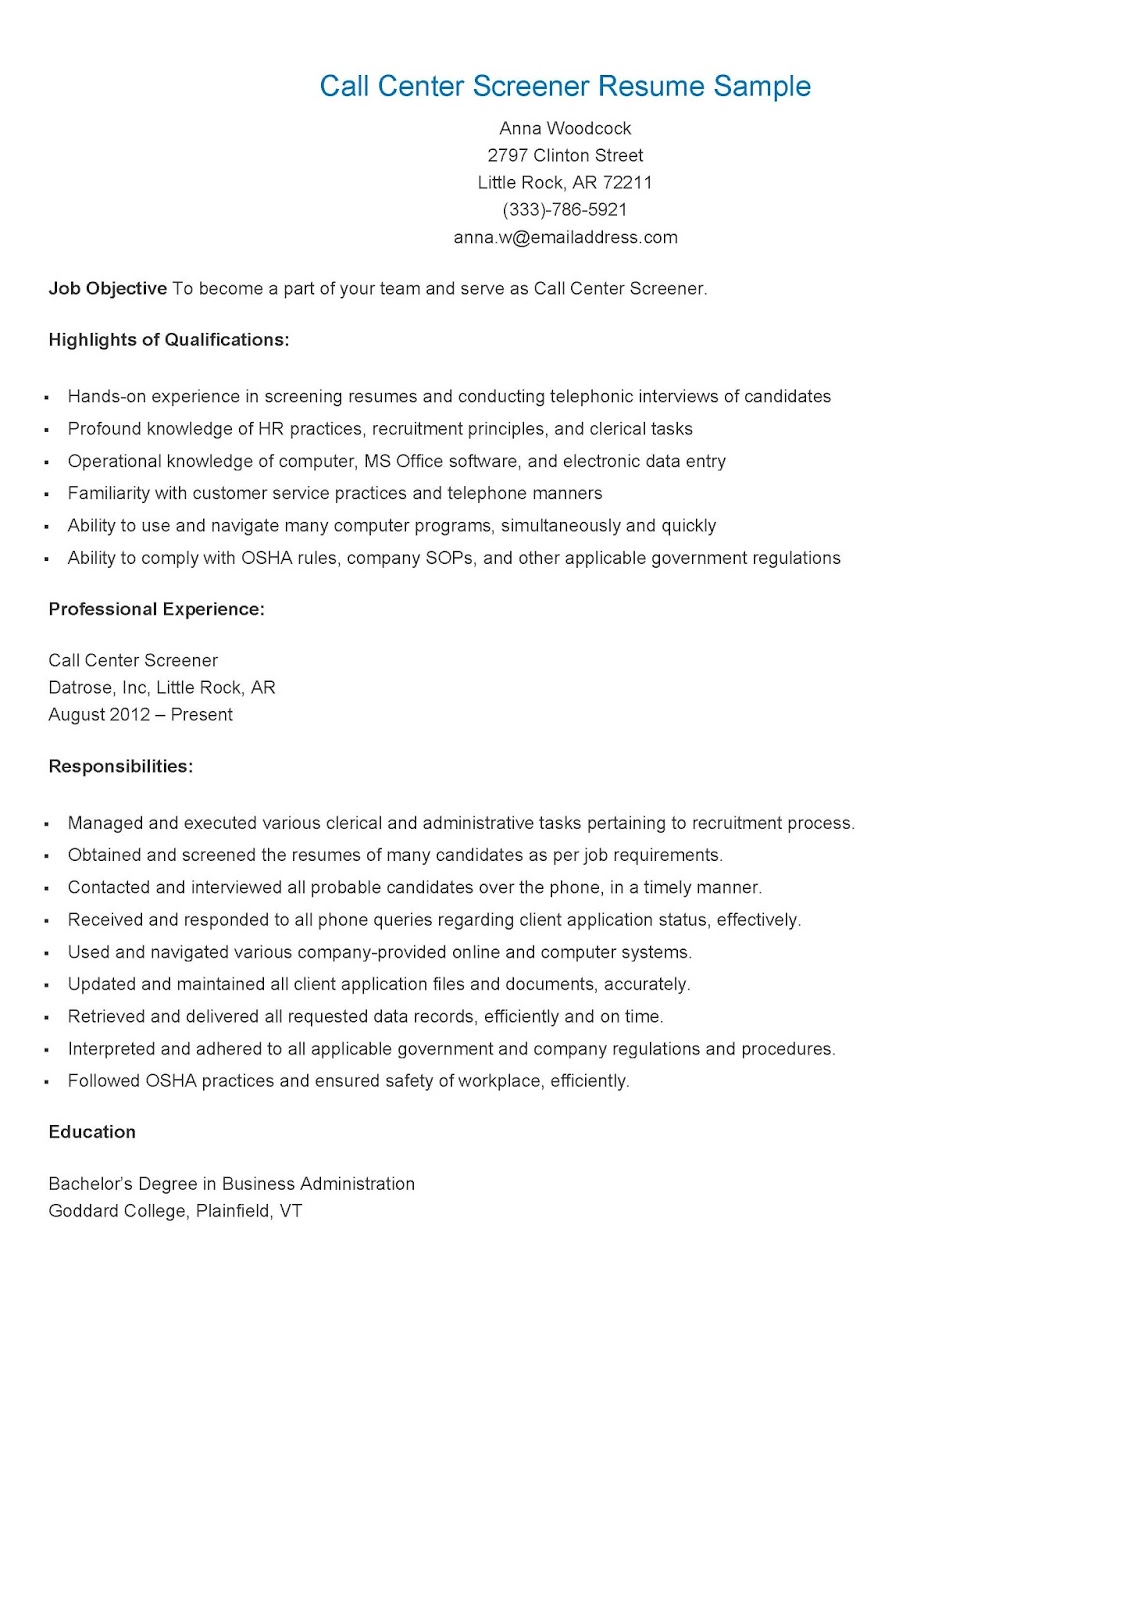 Resume Format For Bpo Resume Samples Call Center Screener Resume Sample